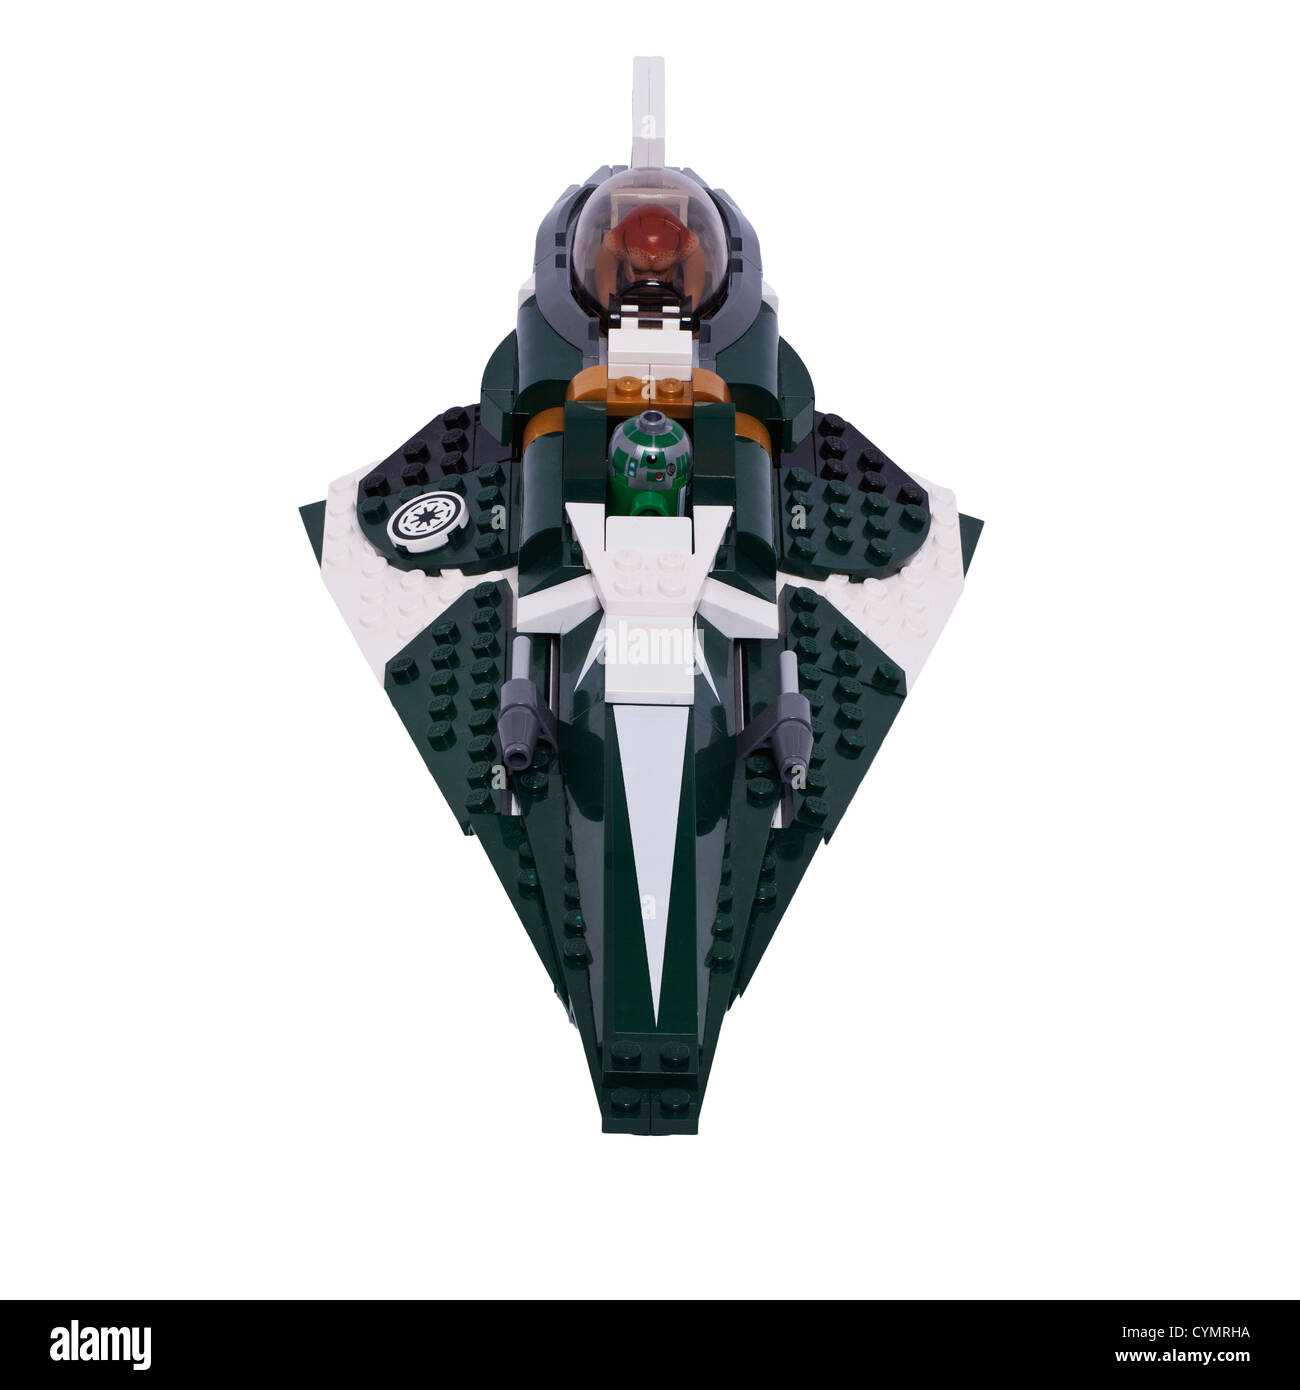 A Lego Star Wars toy on a white background - Stock Image